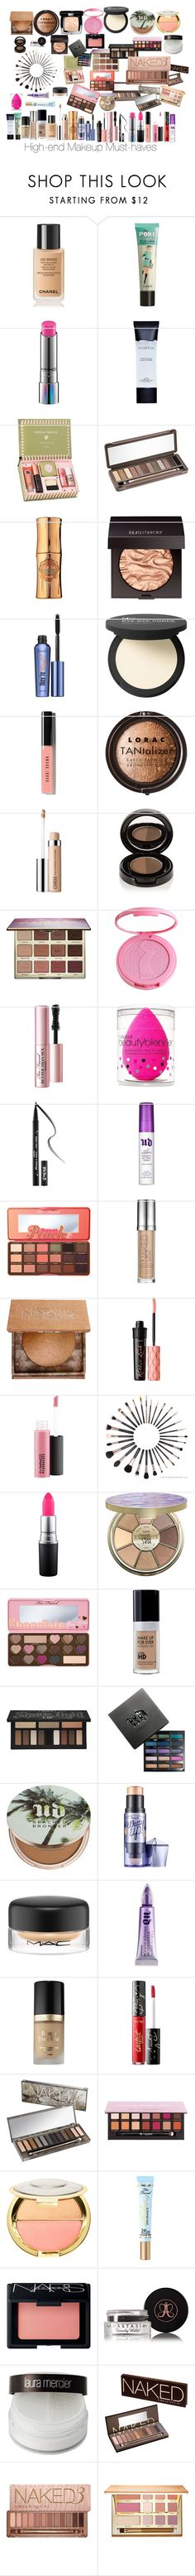 High End Makeup Must-haves by jerzeypeach ❤ liked on Polyvore featuring beauty, Chanel, Benefit, MAC Cosmetics, Smashbox, Urban Decay, Hoola, Laura Mercier, It Cosmetics and Bobbi Brown Cosmetics